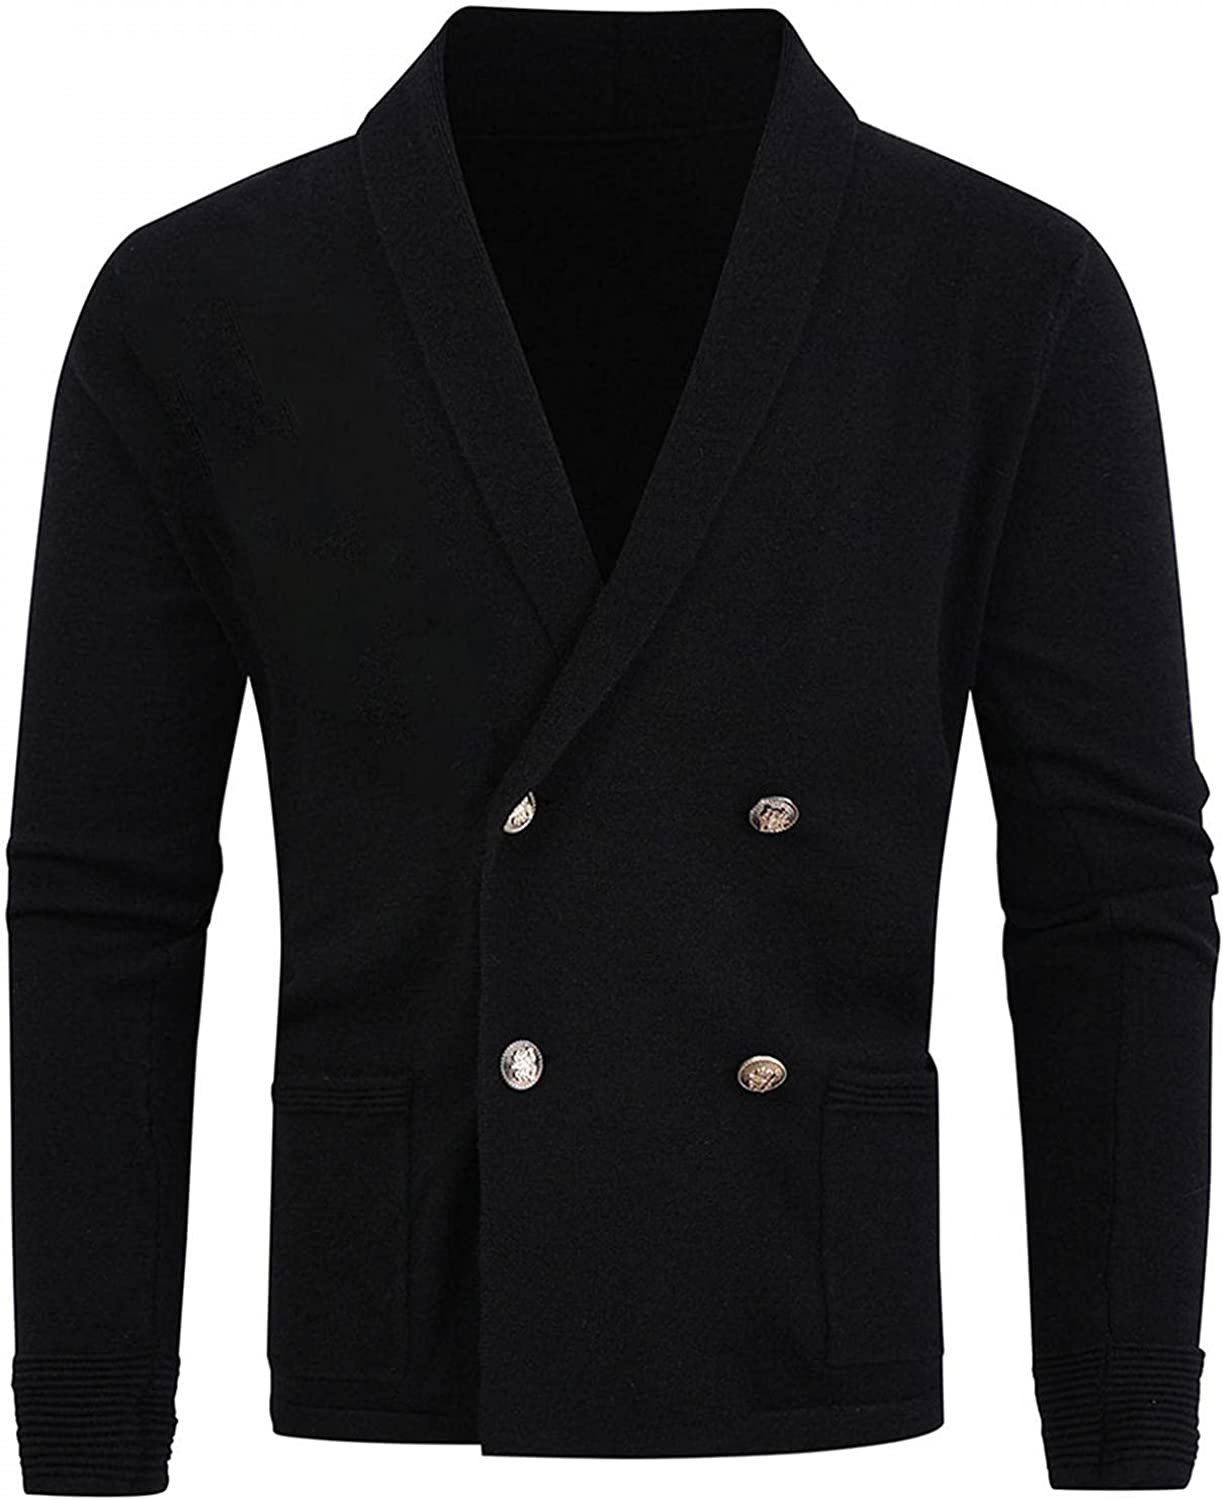 Huangse Shawl Collar Knit Sweater for Men Slim Fit V Neck Long Sleeve Double Breasted Dress Sweater Blazer